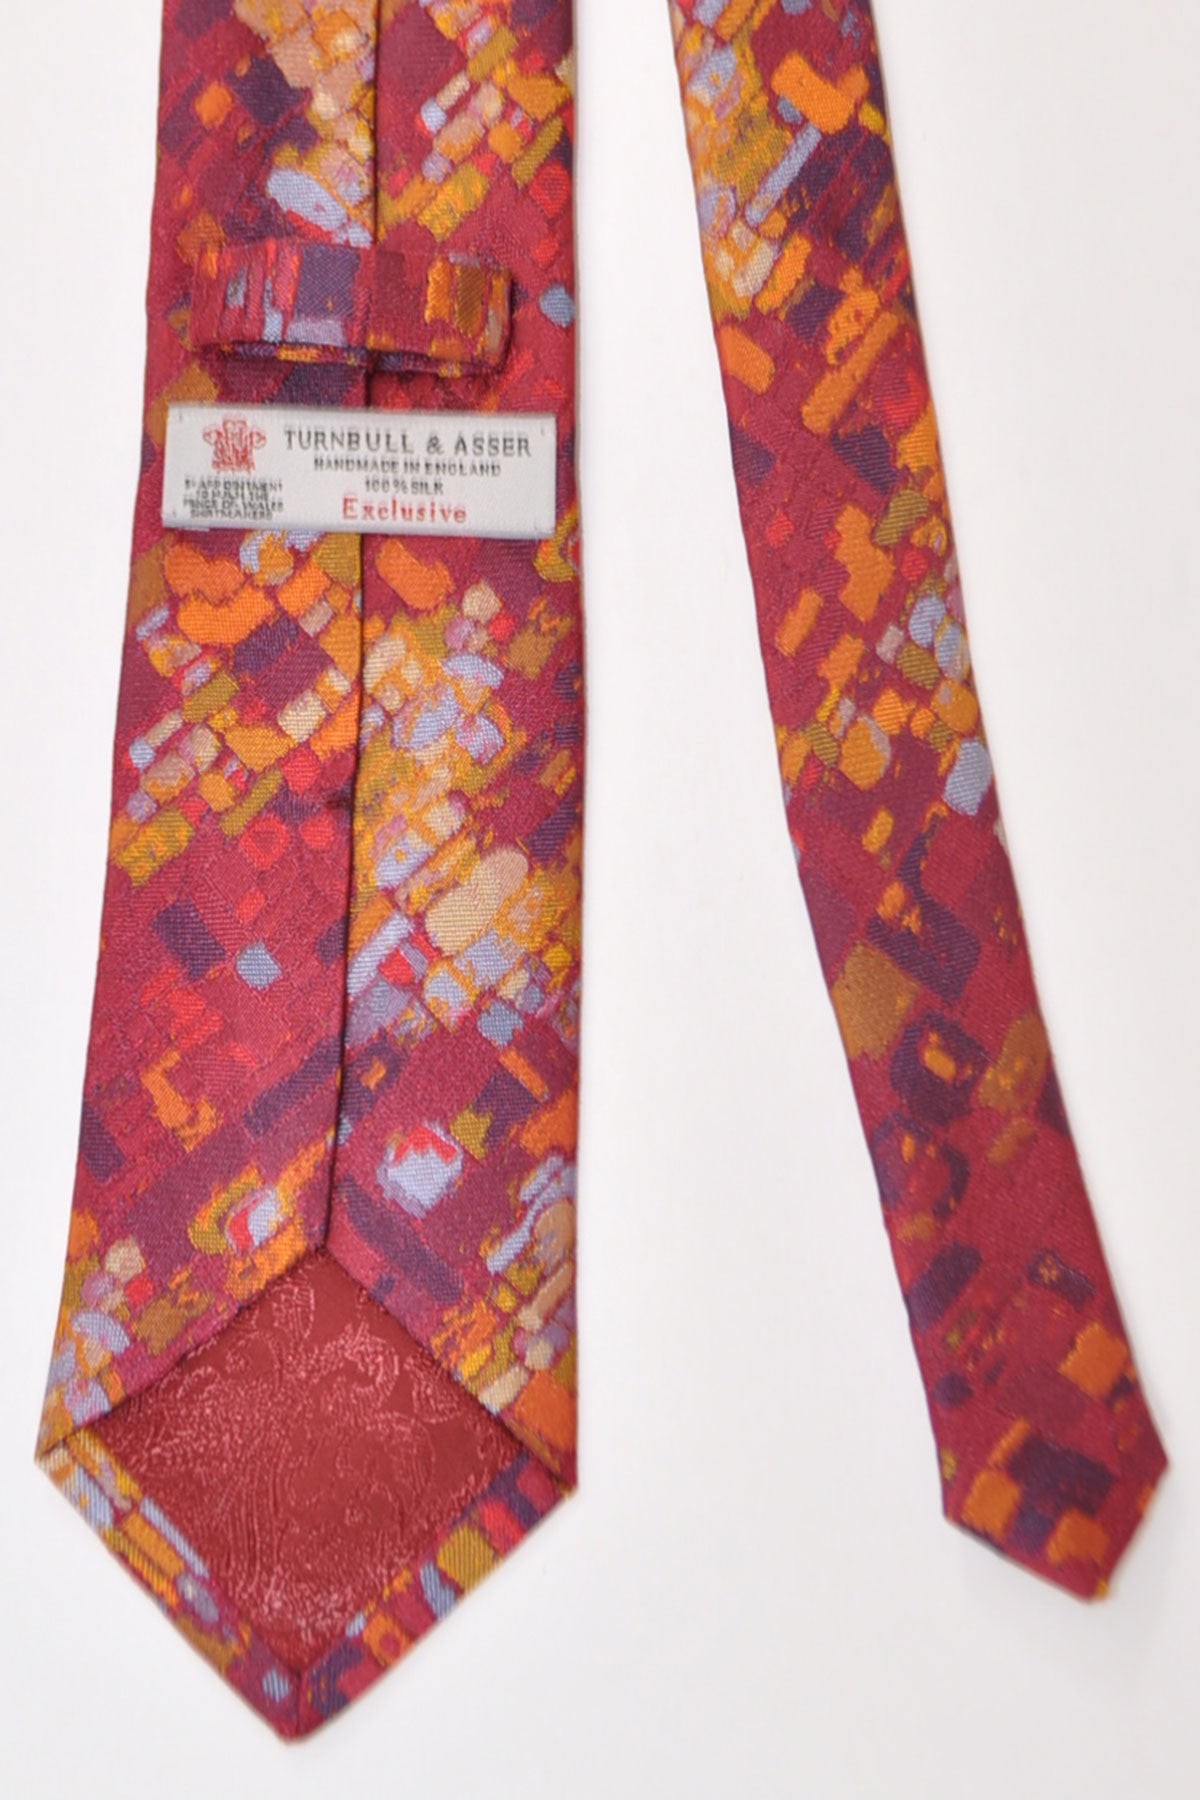 0b761f169626 Turnbull & Asser Tie Burgundy Paint Colors - Tie Deals